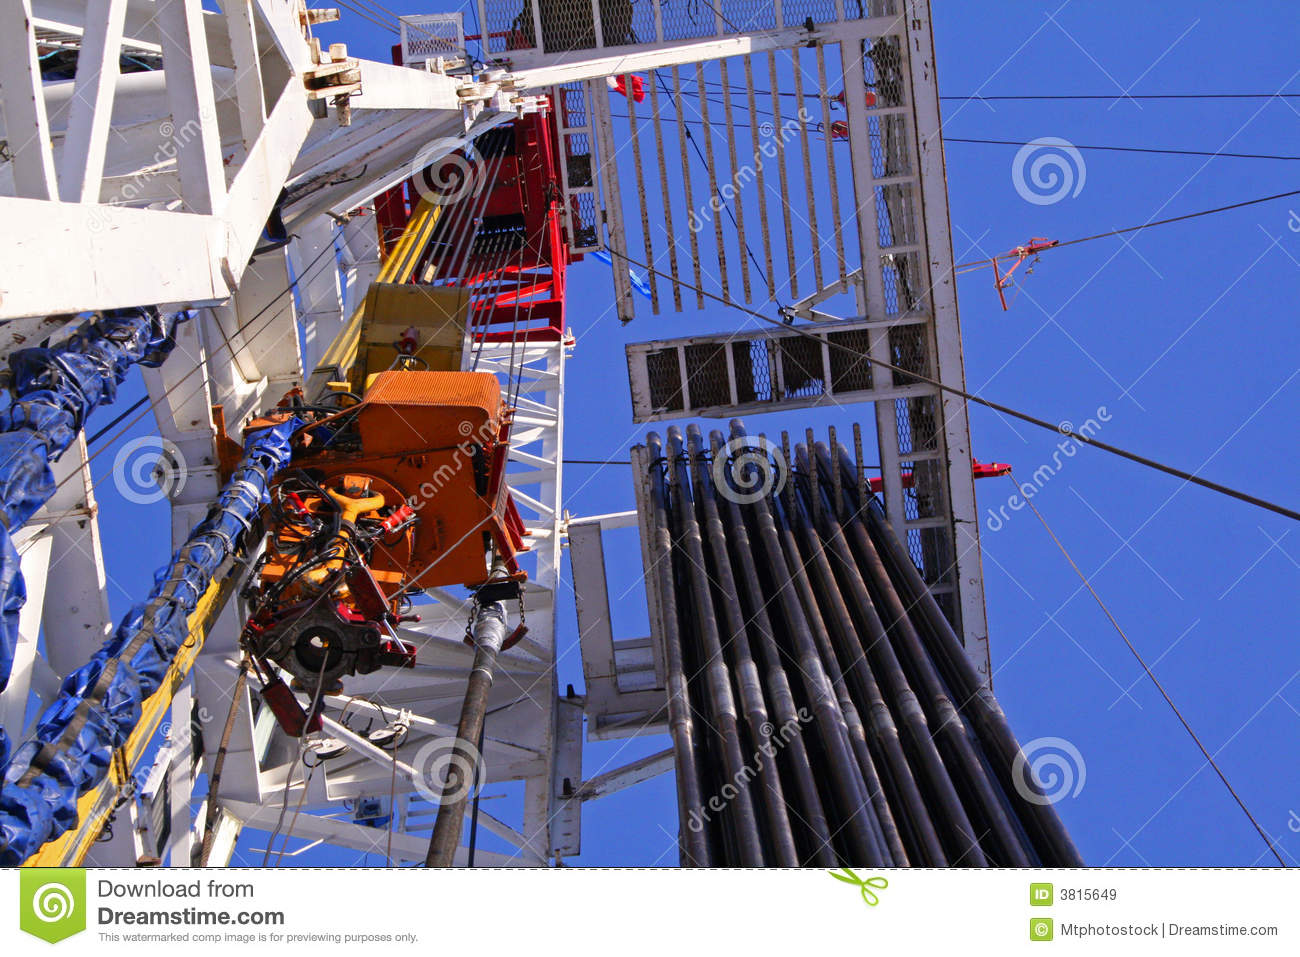 helicopter sounds free with Royalty Free Stock Images Drilling Rig Floor U Ard Image3815649 on 100 in addition Stock Photos Plastic Toy Helicopter Image19795713 further 670 likewise 351 also Mission Patches Their Source and Meaning 001.